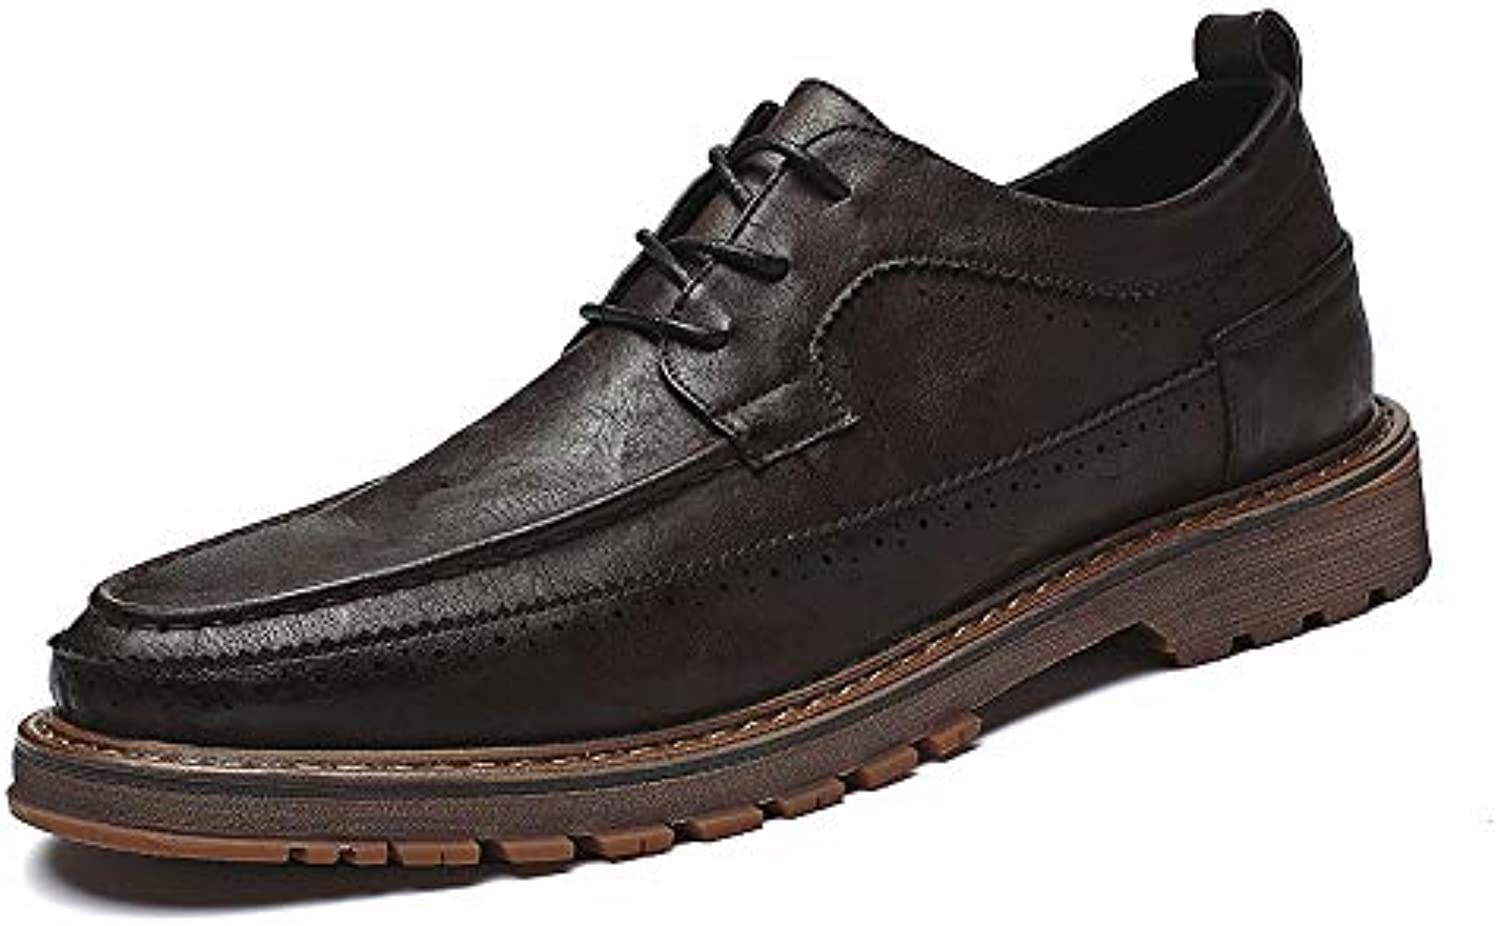 Xiaojuan-shoes, Men's Casual Fashion Business Oxford Outsole Autumn And Winter New Retro Ventilate Outsole Oxford Formal Shoes... 6defb5